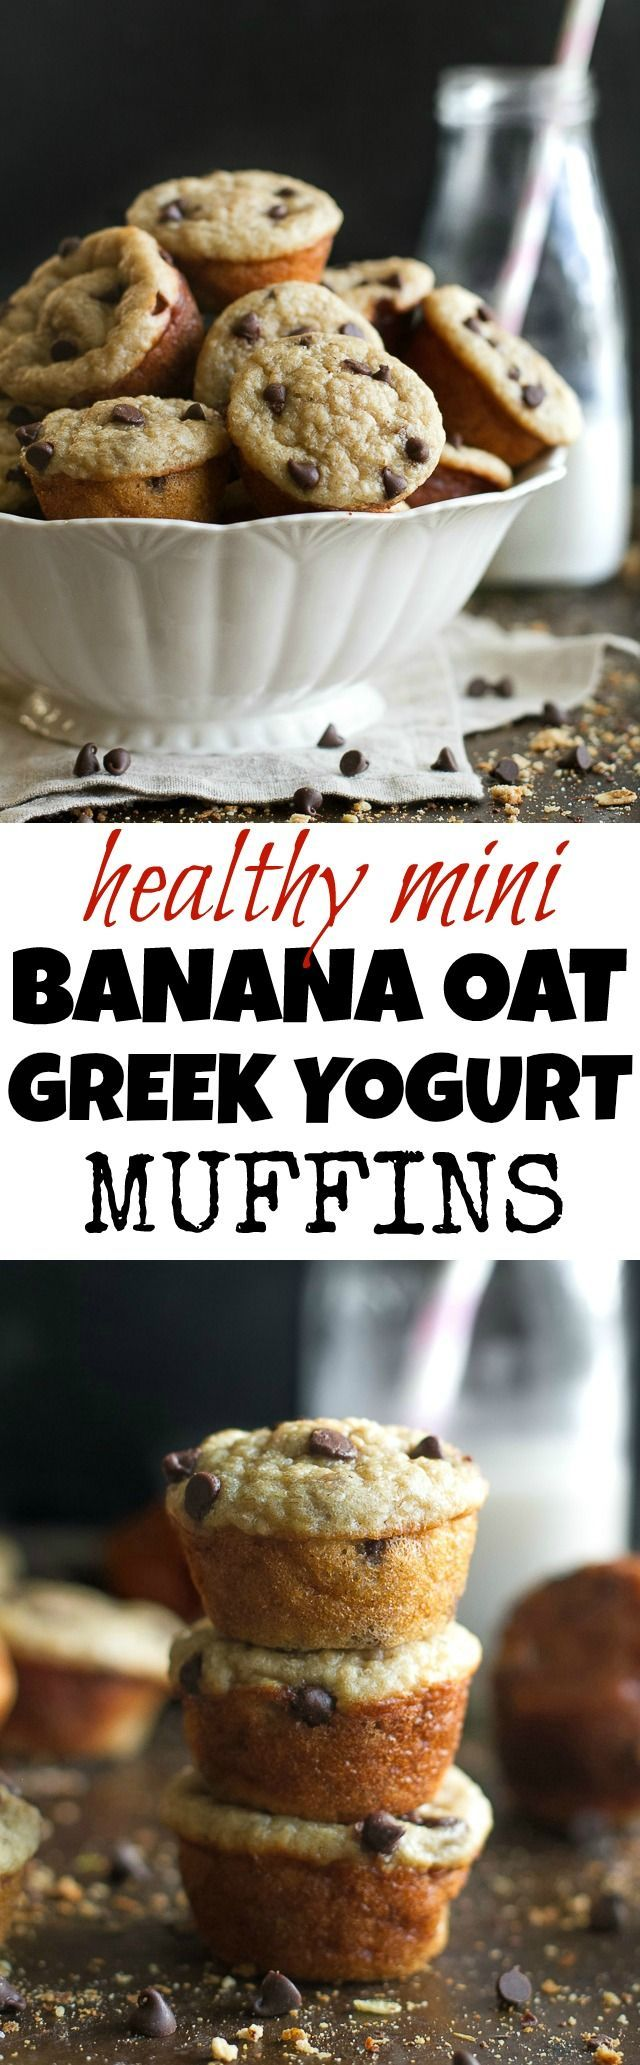 Mini Banana Oat Greek Yogurt Muffins - a healthy bite-sized snack that's PERFECT for kids (or anyone)! Made with NO flour, oil, or refined sugar, these fluffy little muffins are a delicious and easy breakfast or snack {gluten free, flourless, kid friendly, recipe} | runningwithspoons.com